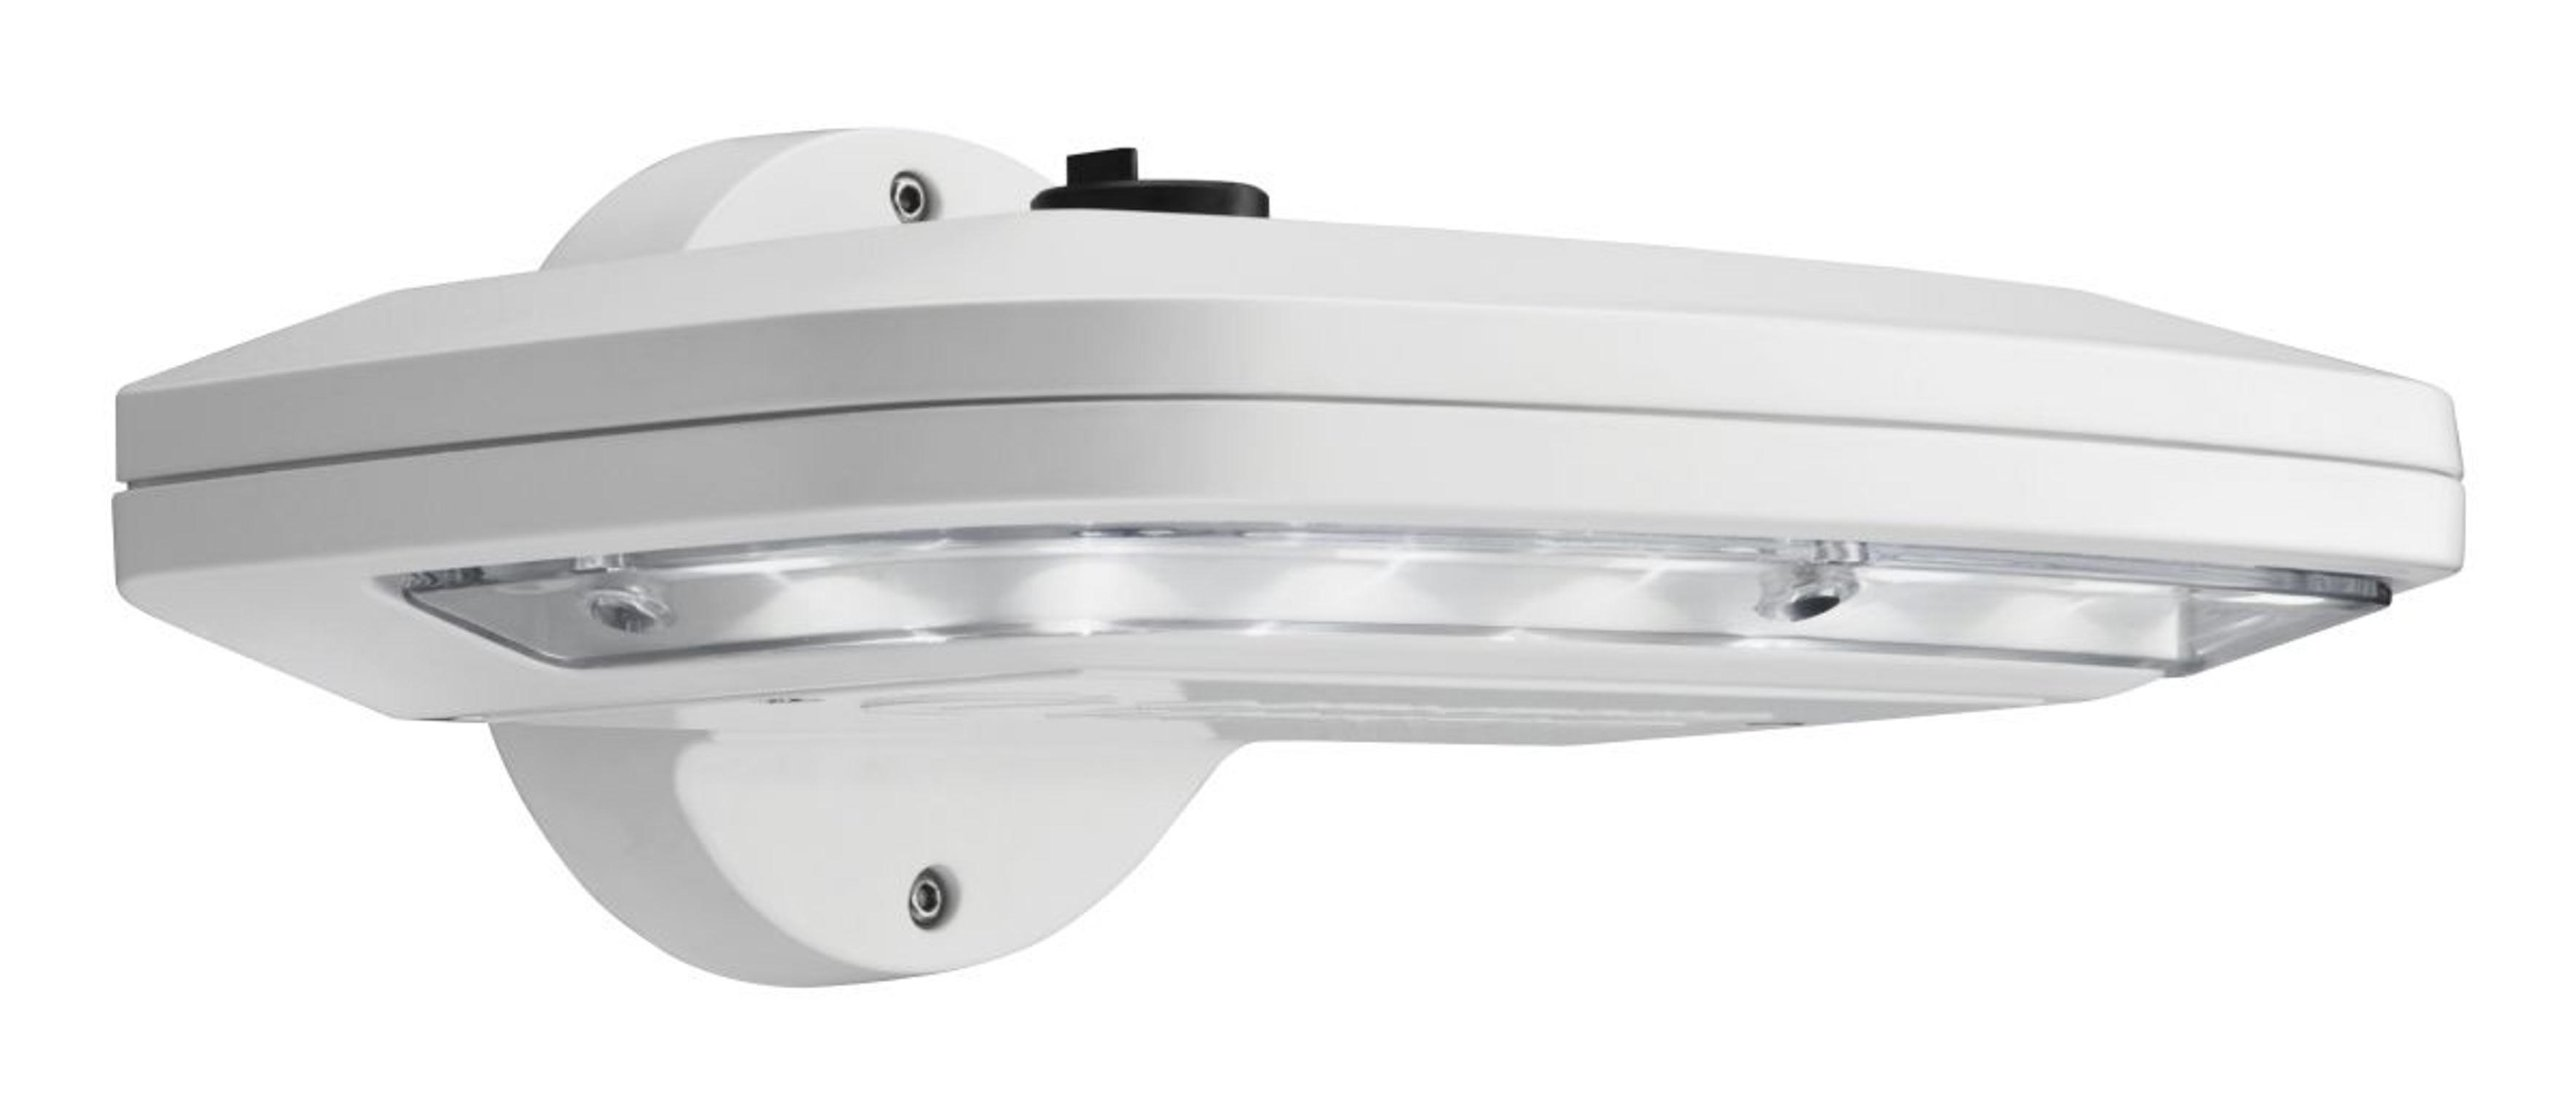 Lithonia Lighting OLW14 WH M2 White LED Outdoor Wall Mount Area Light by Lithonia Lighting